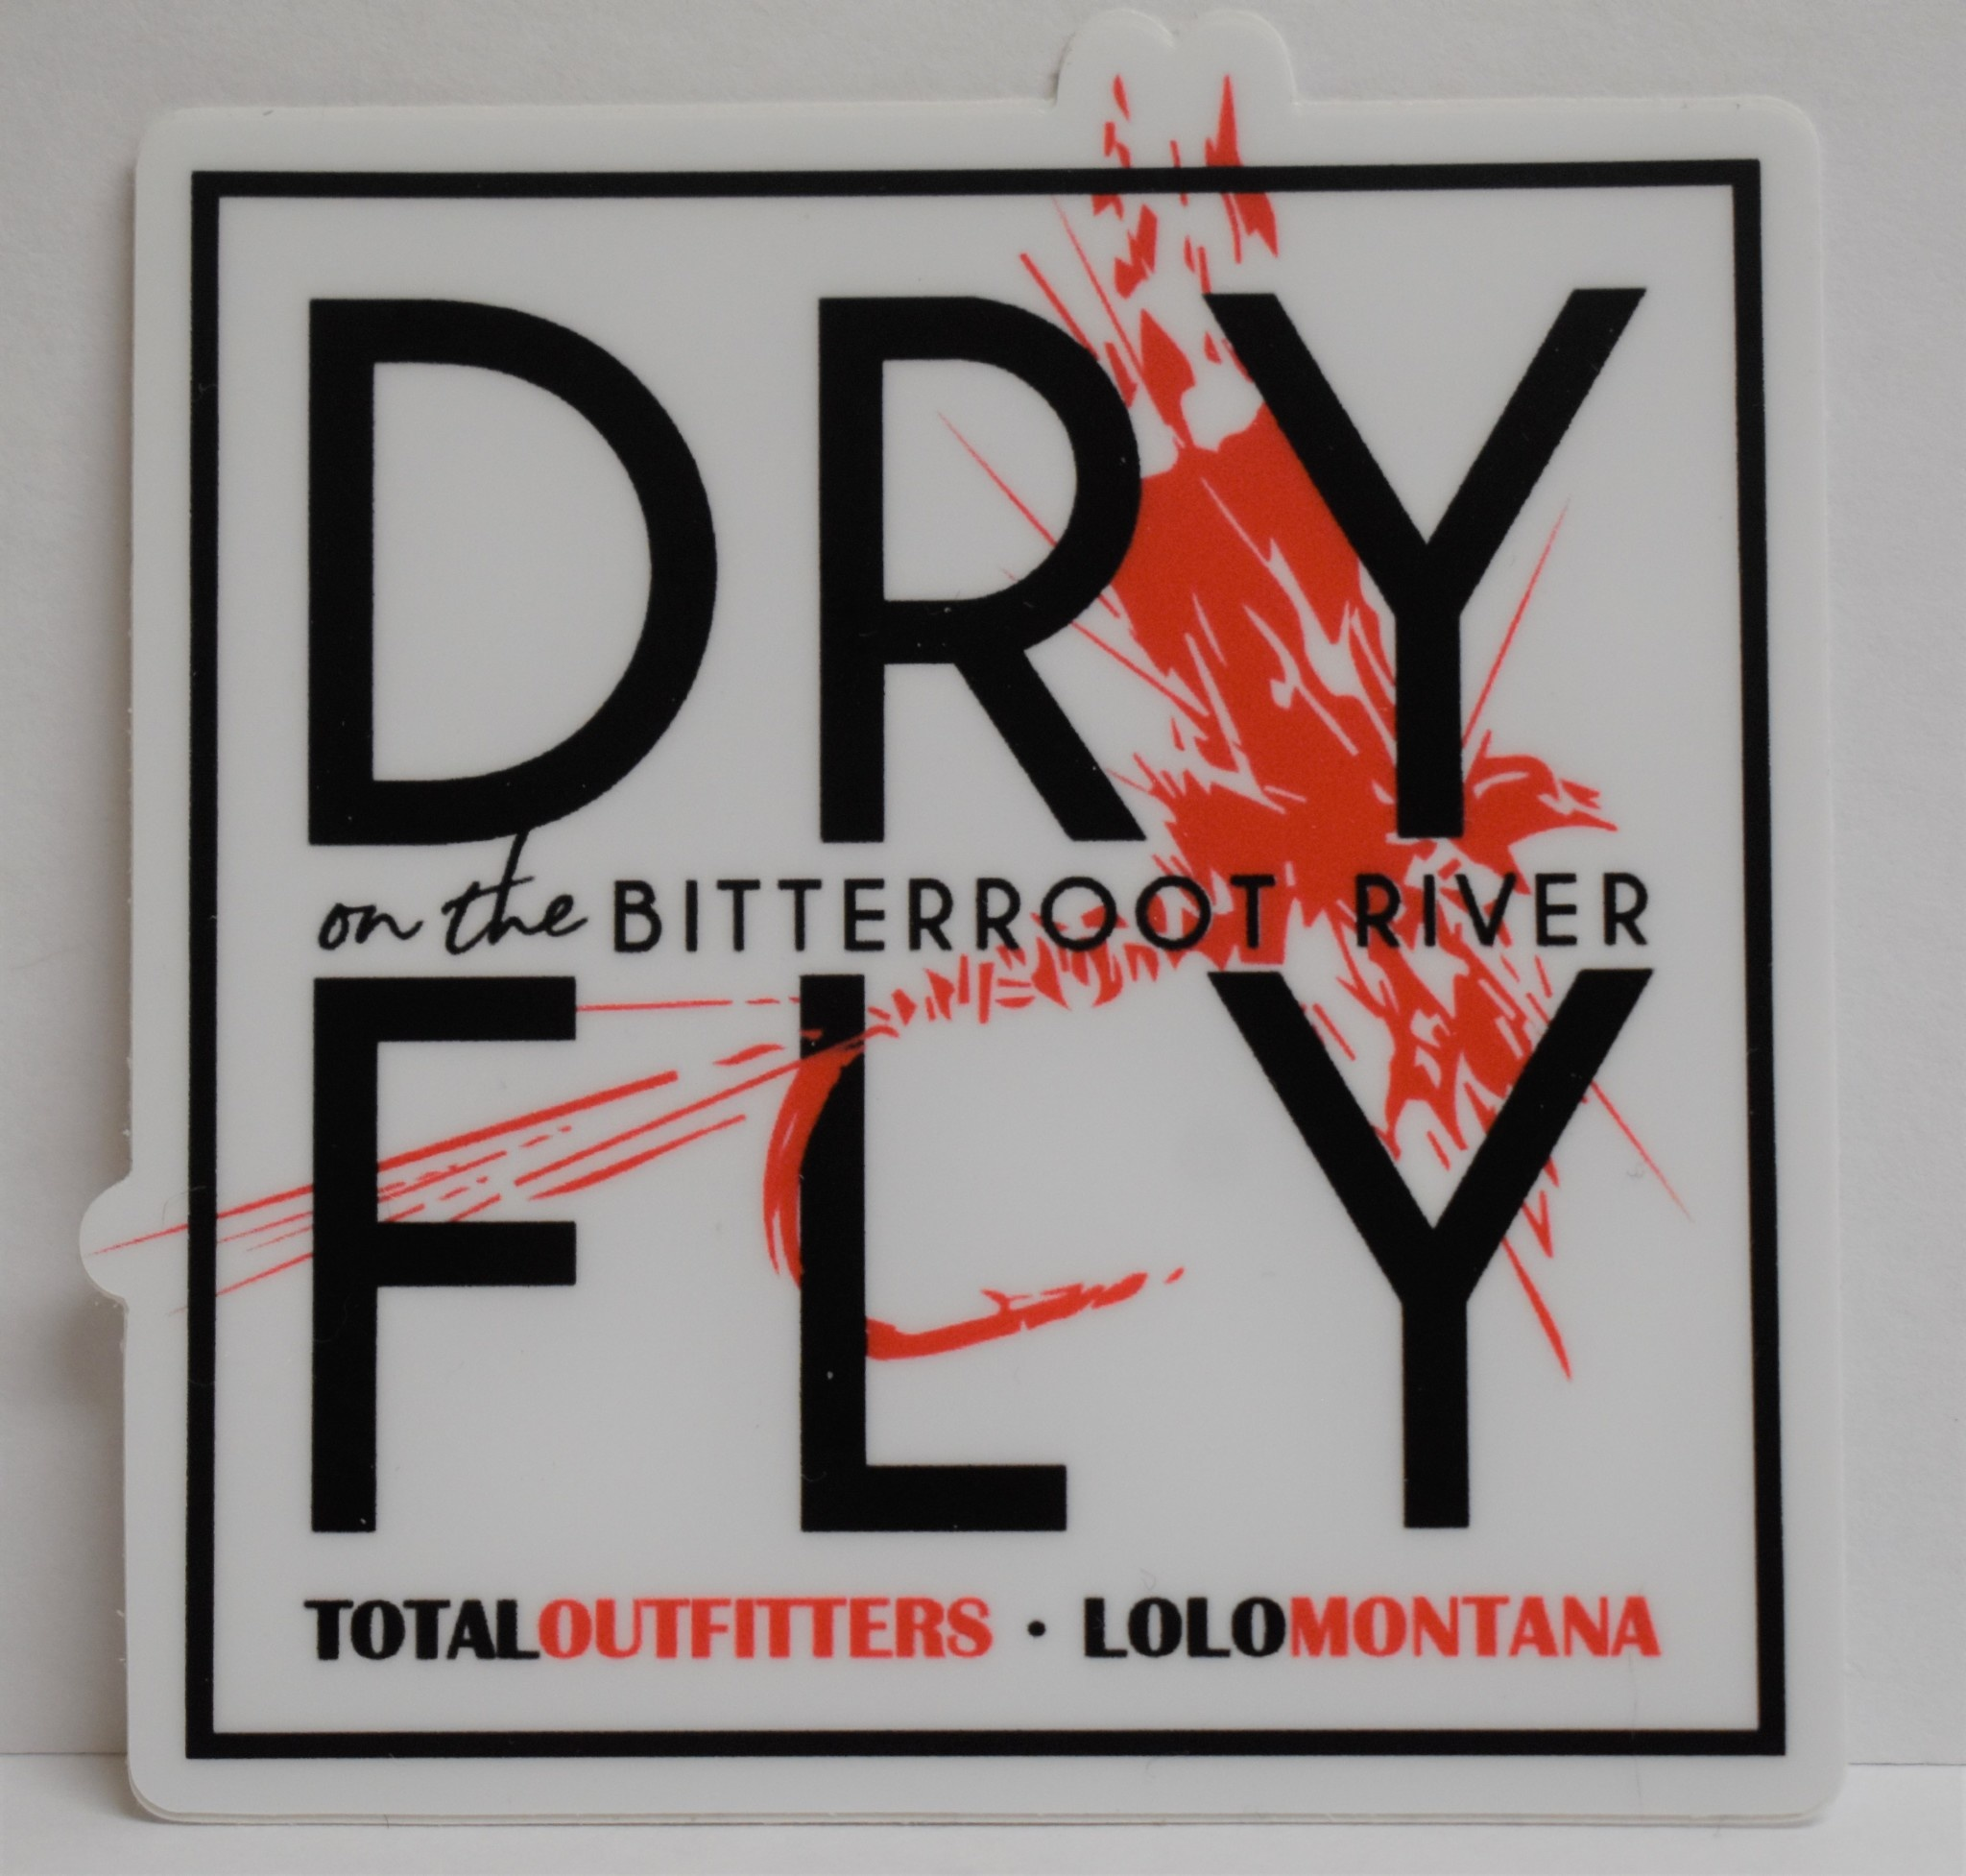 TOTAL OUTFITTERS TOTAL OUTFITTERS DRY FLY ON THE BITTERROOT RIVER STICKER